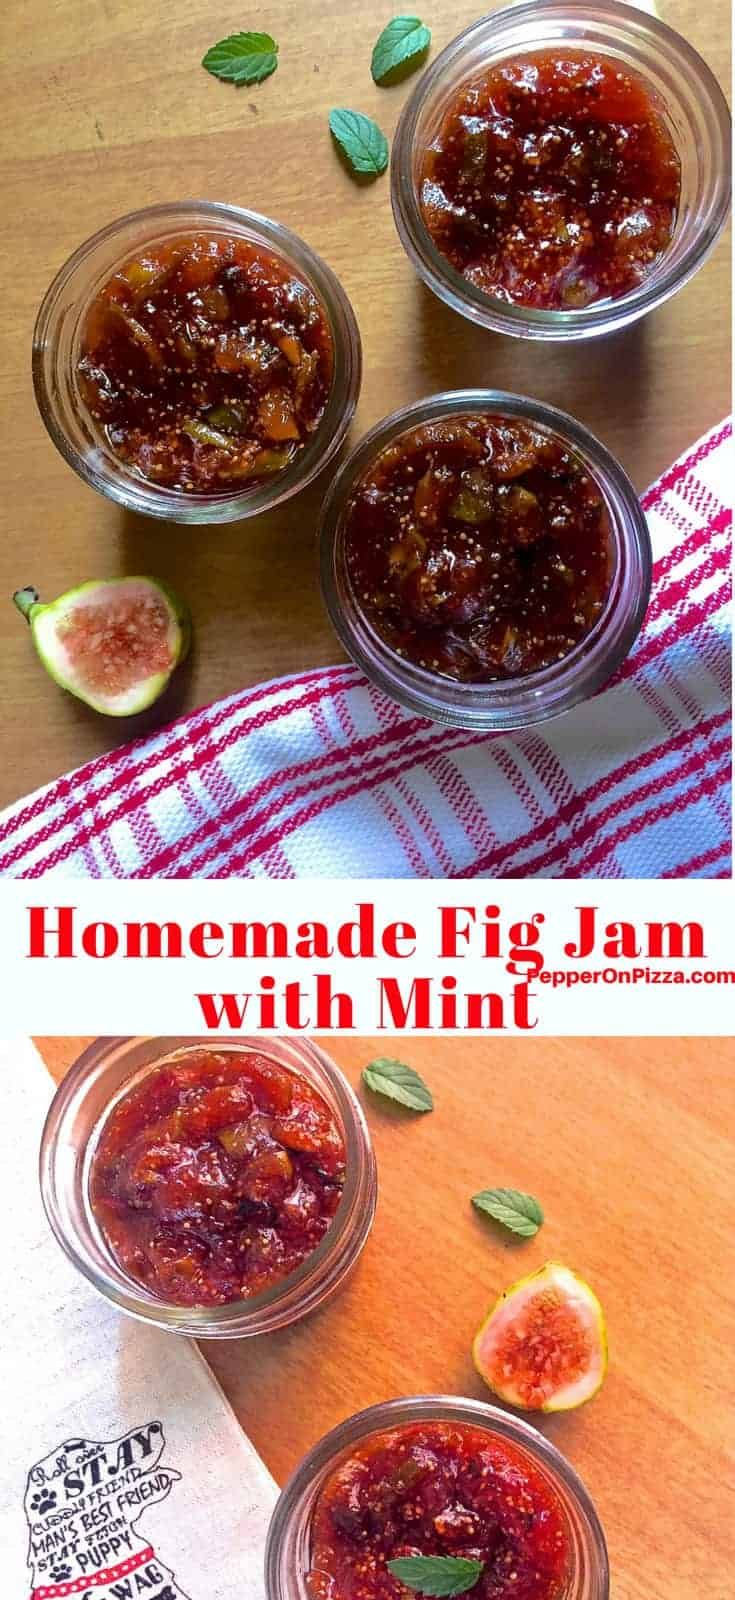 Homemade fig jam with mint in small jars with halved figs on one side and a white napkin with red lines on another and a mint leaf alongside https://www.PepperOnPizza.com